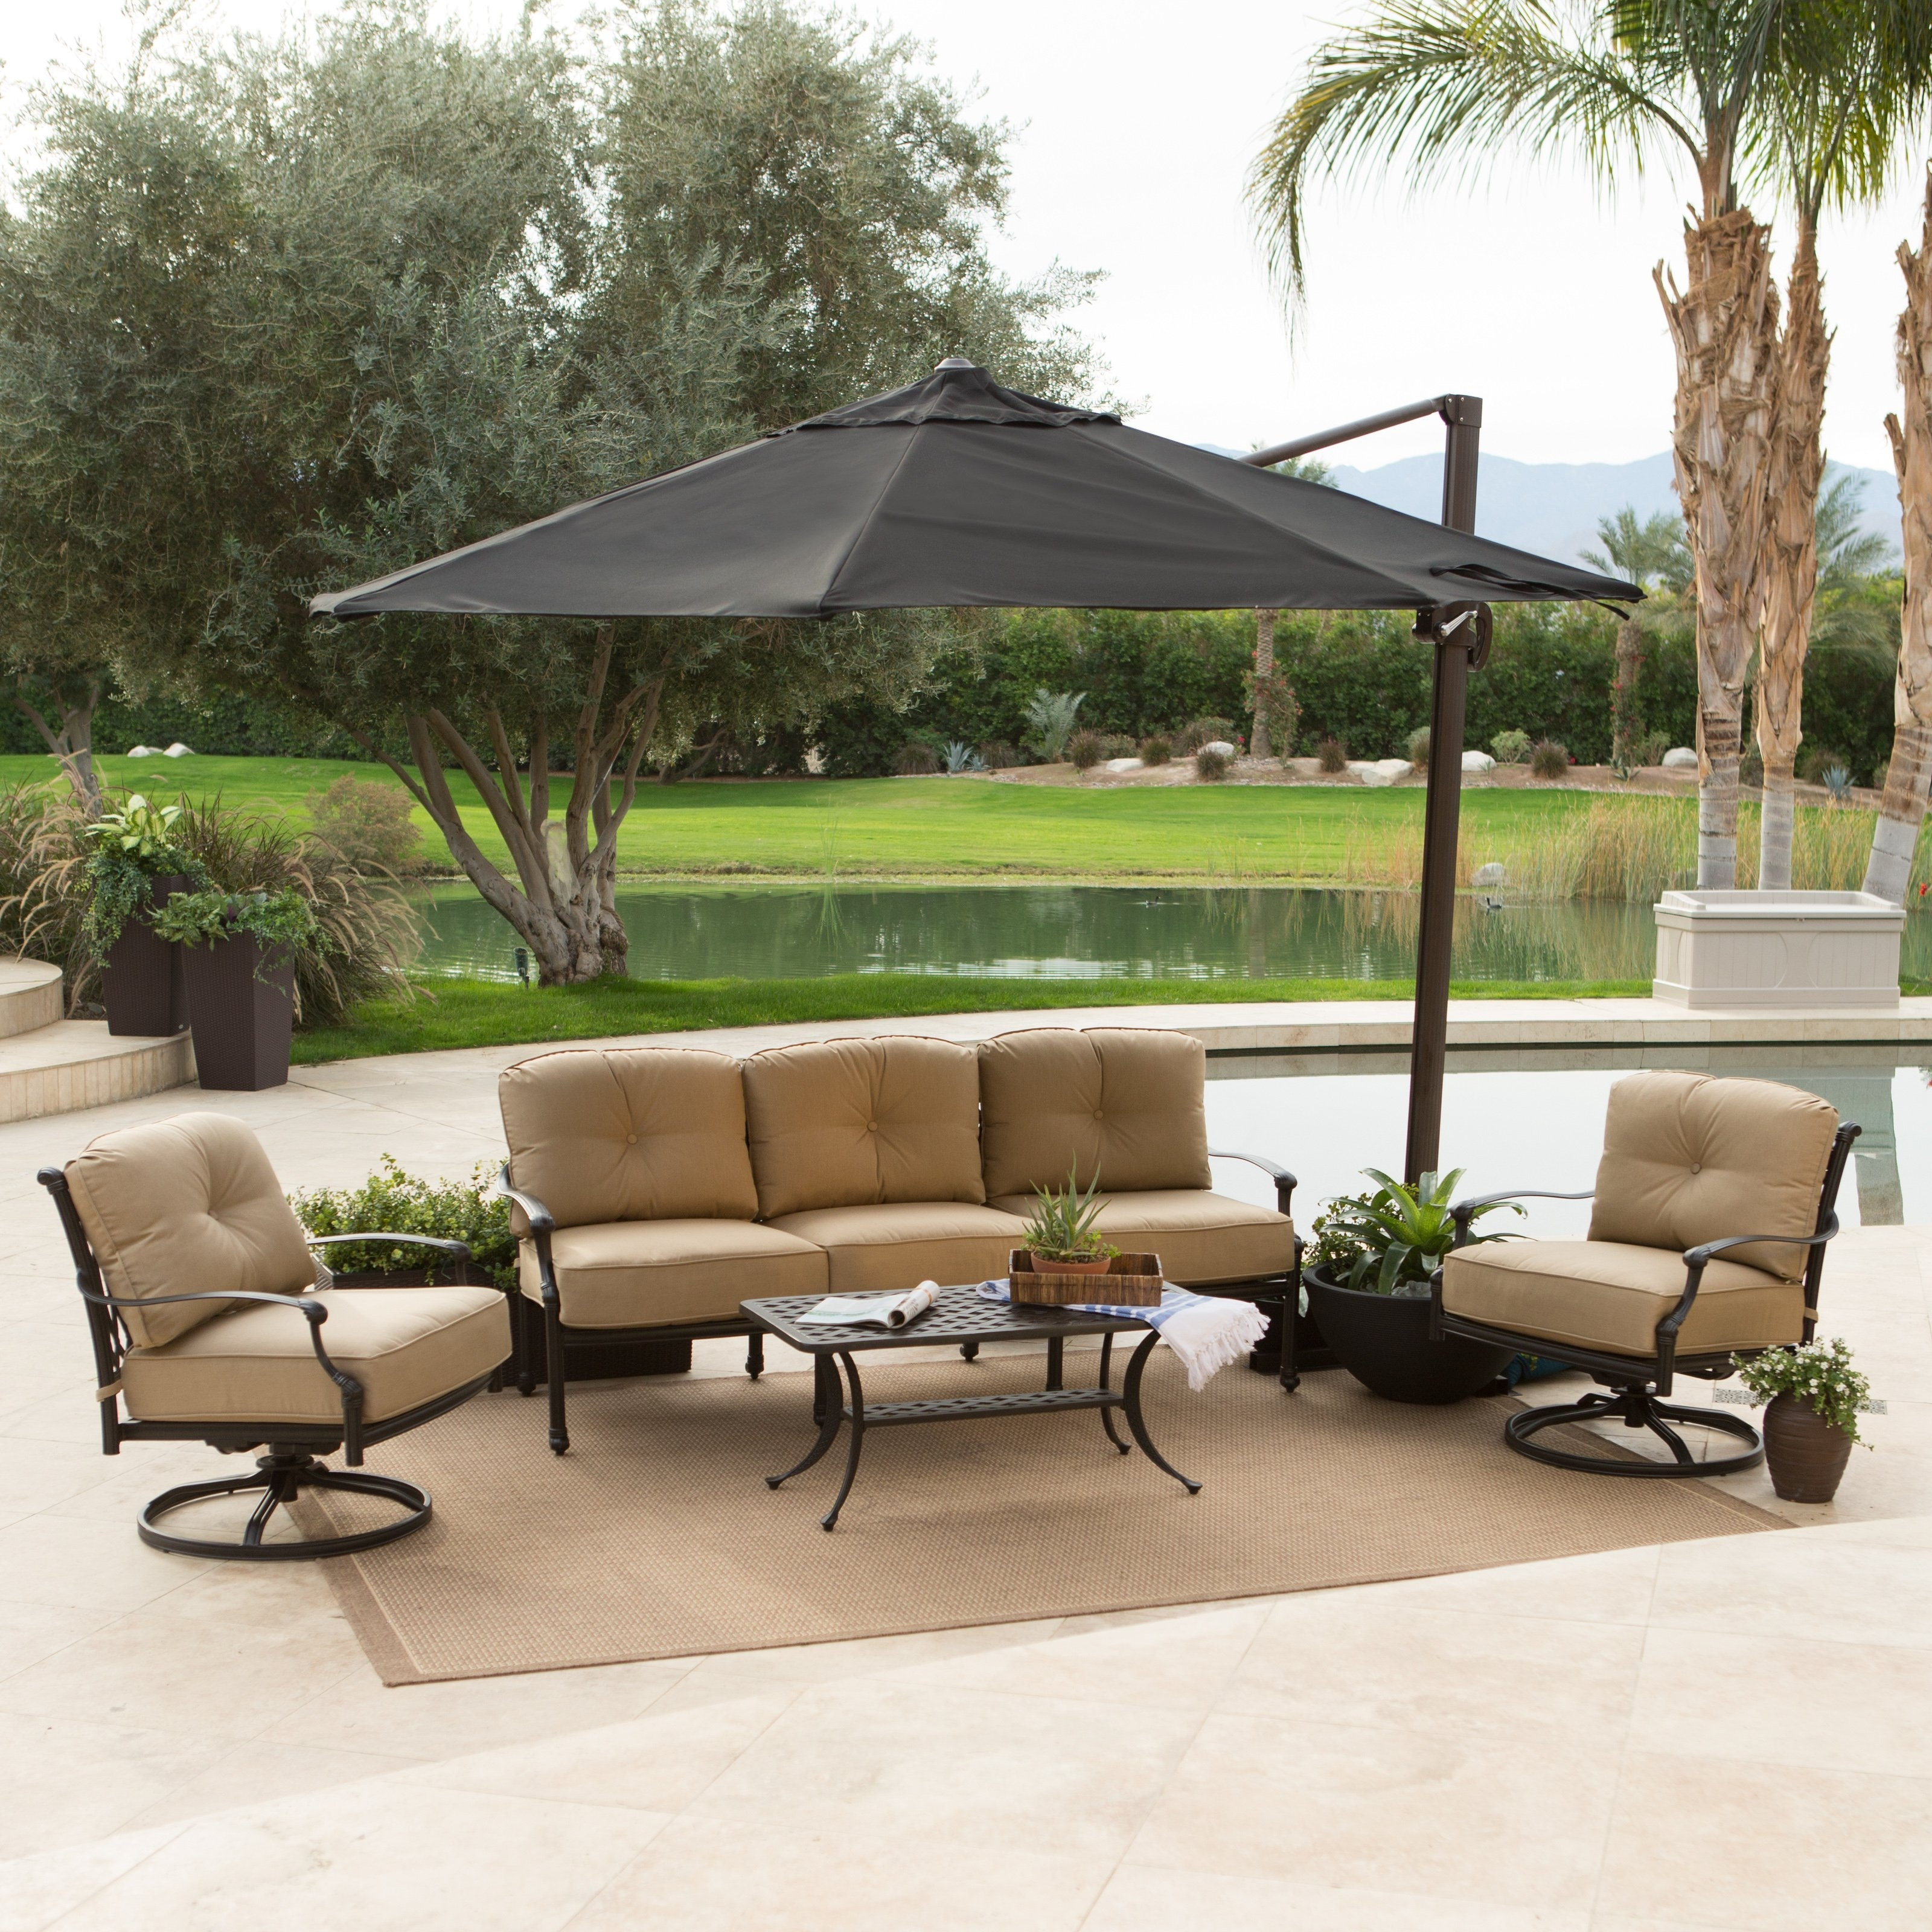 Most Popular Patio Deck Umbrellas Within Cheerful Outdoor Patio Design With Chairs And Table Sets Protected (View 16 of 20)